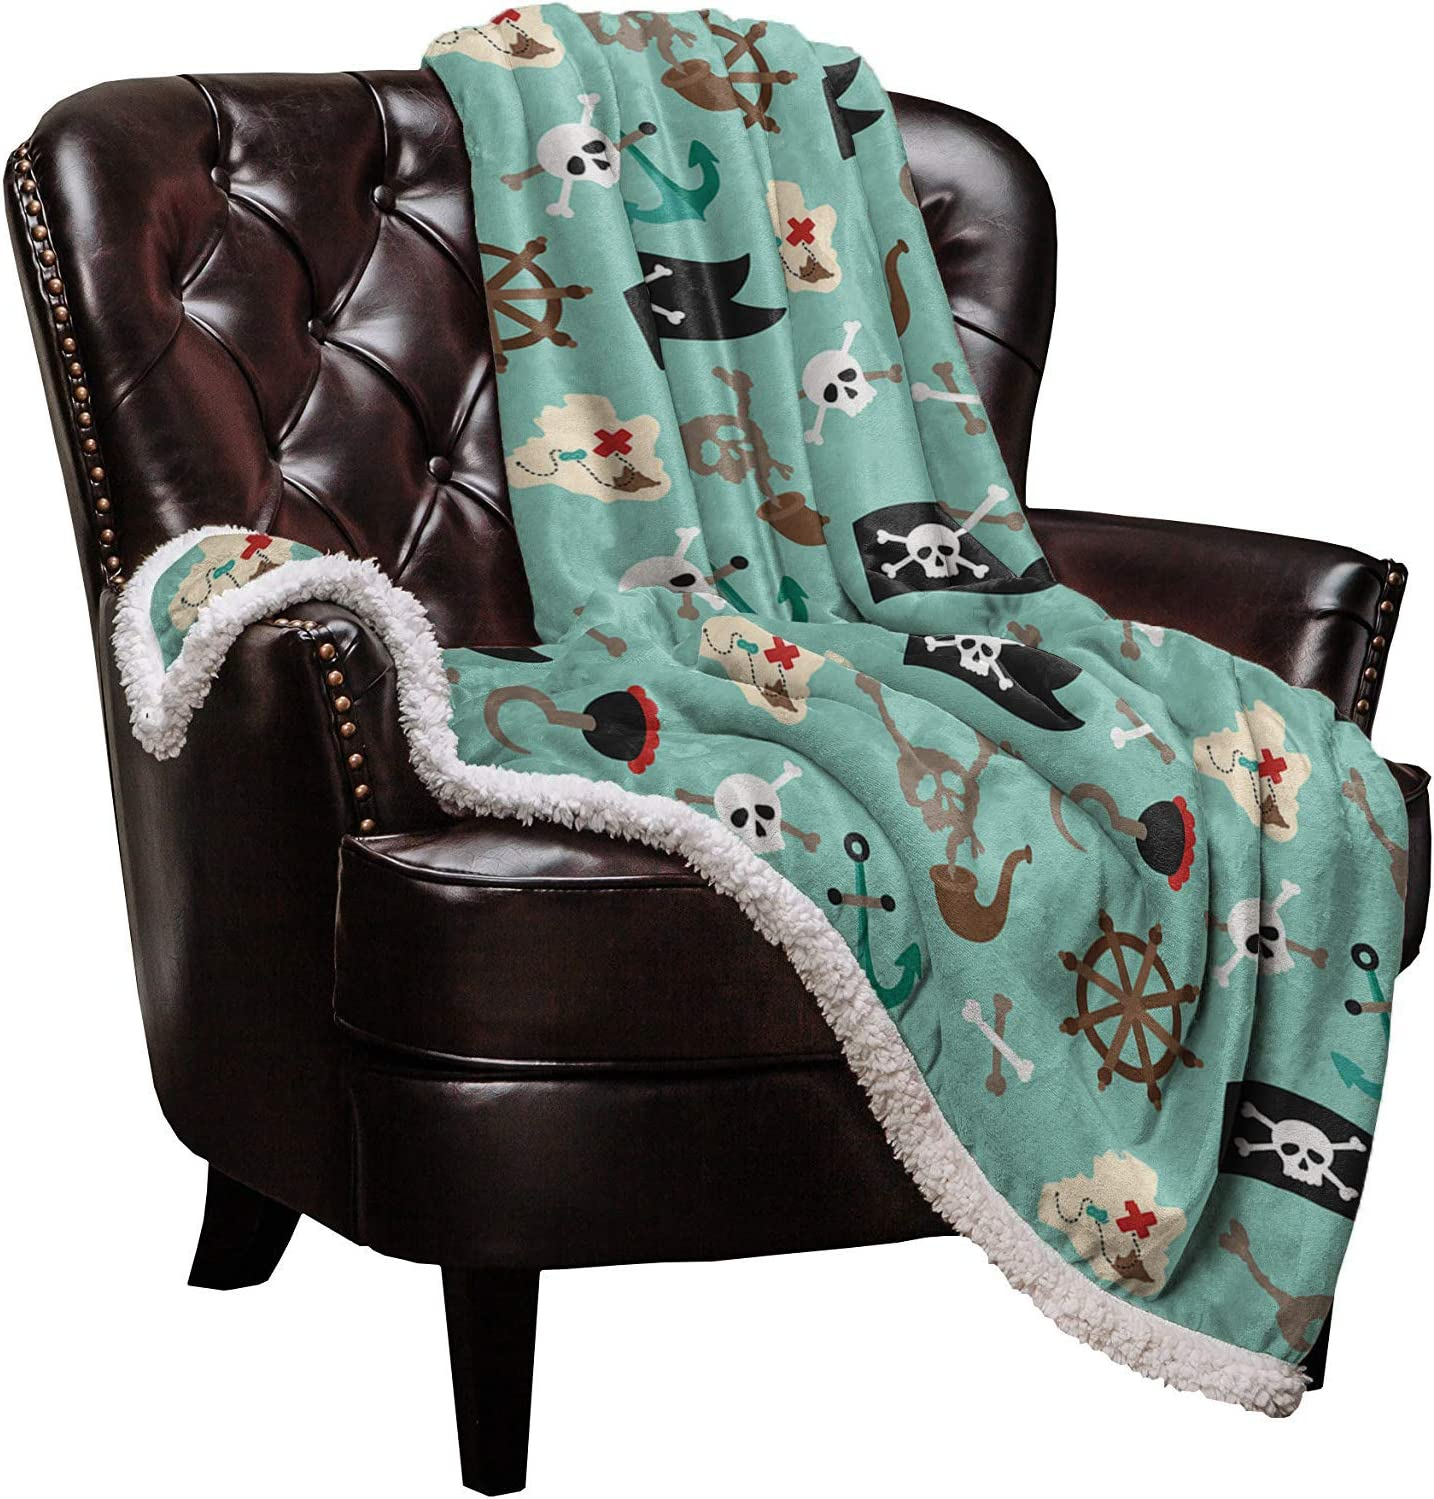 Sherpa Fleece Throw Blanket Pirate Soft Warm and Ranking TOP19 Sales results No. 1 Blankets Skull